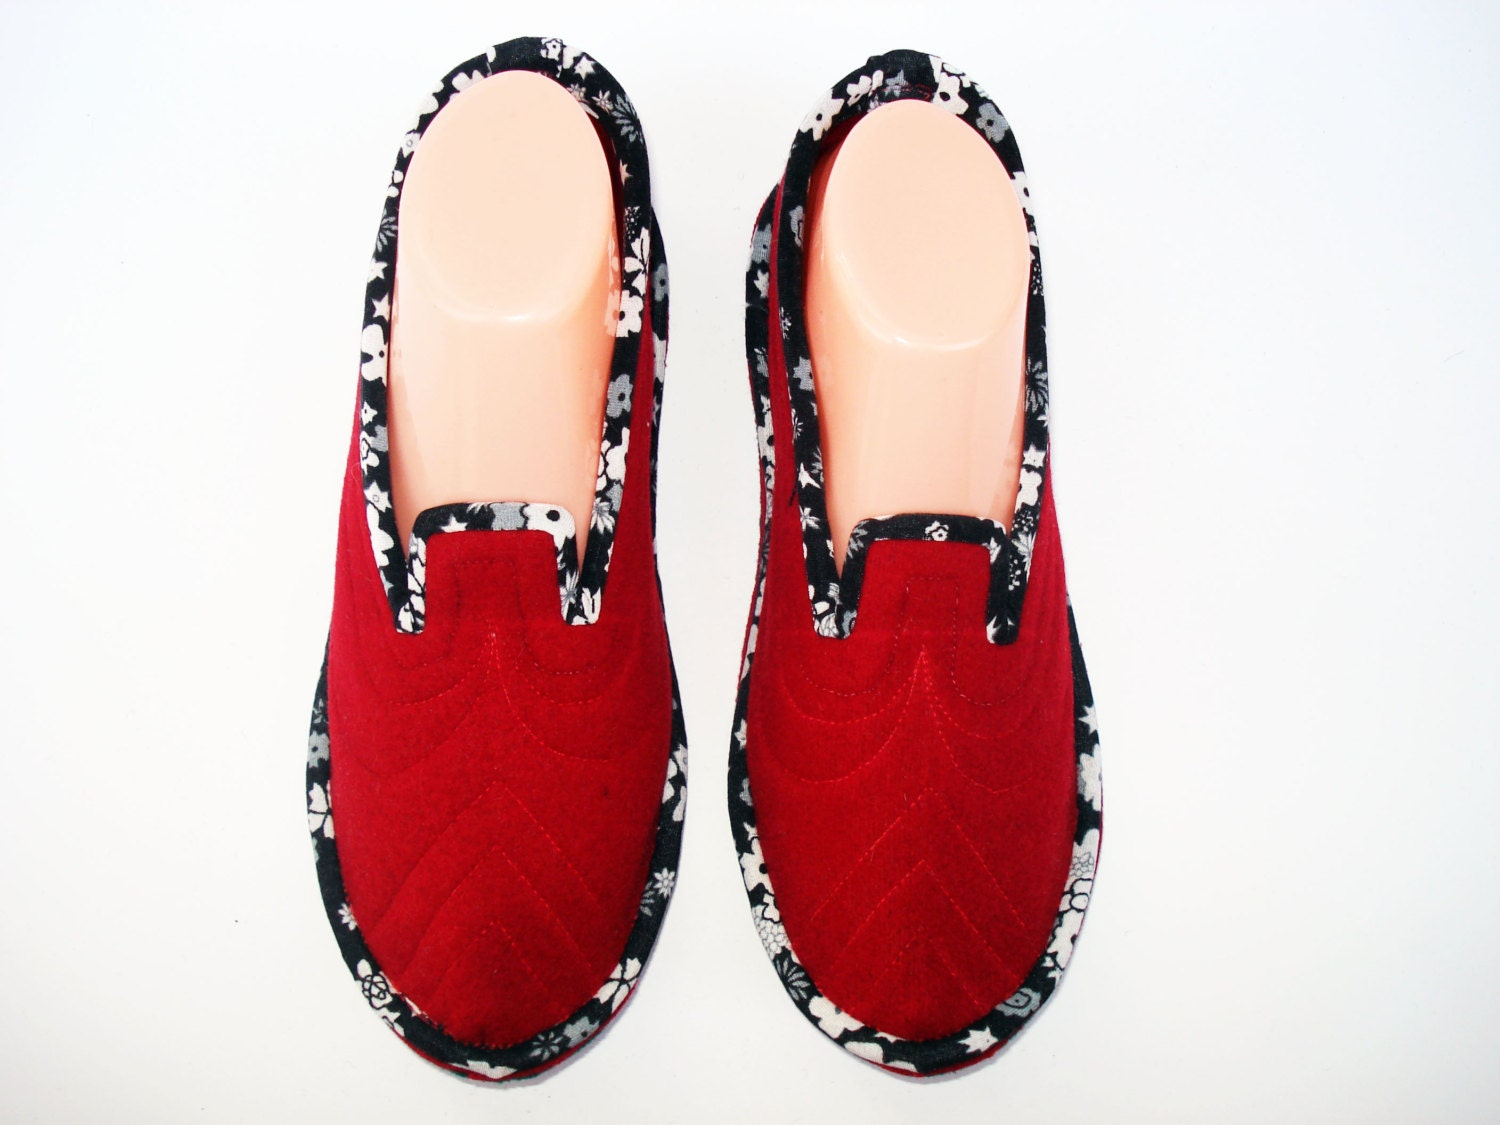 Red Womens Slippers Home Slippers House Slippers Bedroom